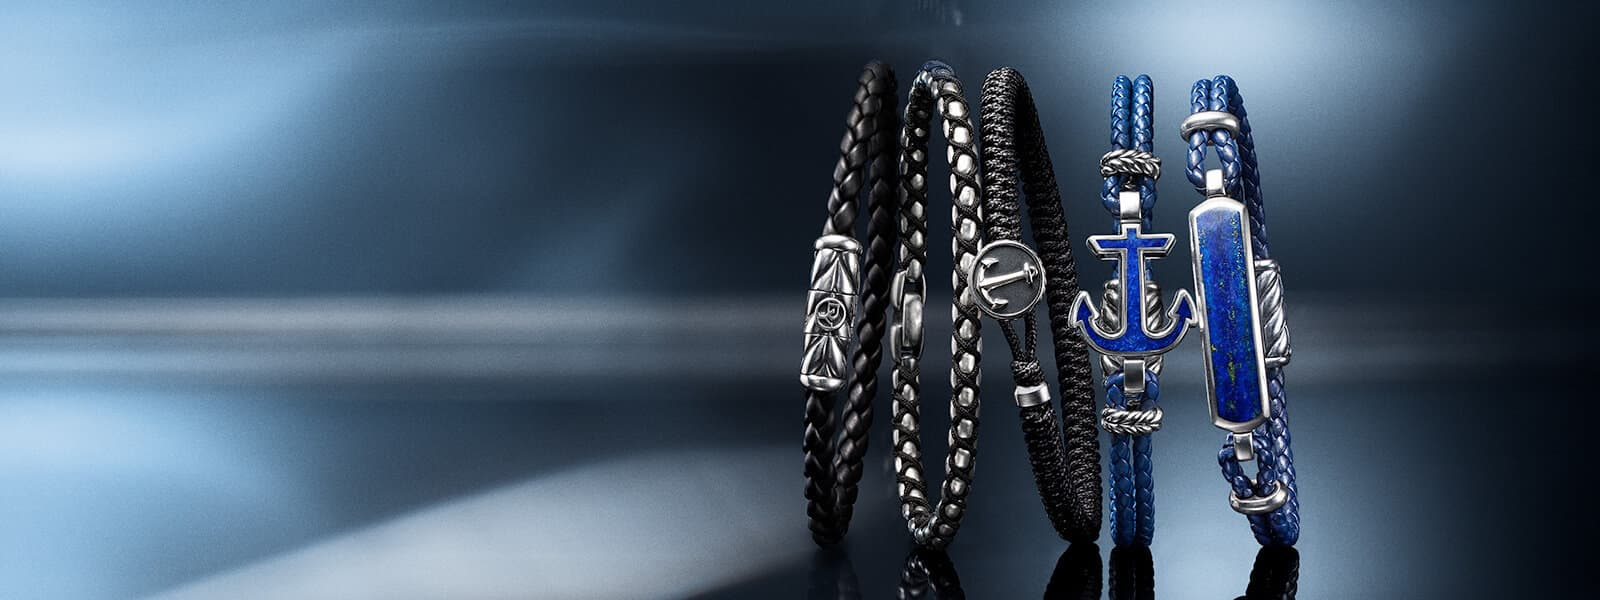 A color photograph shows a horizontal stack of five David Yurman men's bracelets from the Chevron, Chain and Maritime® collections atop and in front of reflective surfaces with angular, multi-colored reflections of light. The Chevron bracelet is crafted from woven black rubber with sterling silver. The Chain and one of the Maritime® bracelets are crafted from woven black nylon with sterling silver. The rest of the Maritime® bracelets are crafted from woven blue leather with sterling silver and inlaid lapis lazuli in the shape of an anchor or the bar in an ID bracelet.